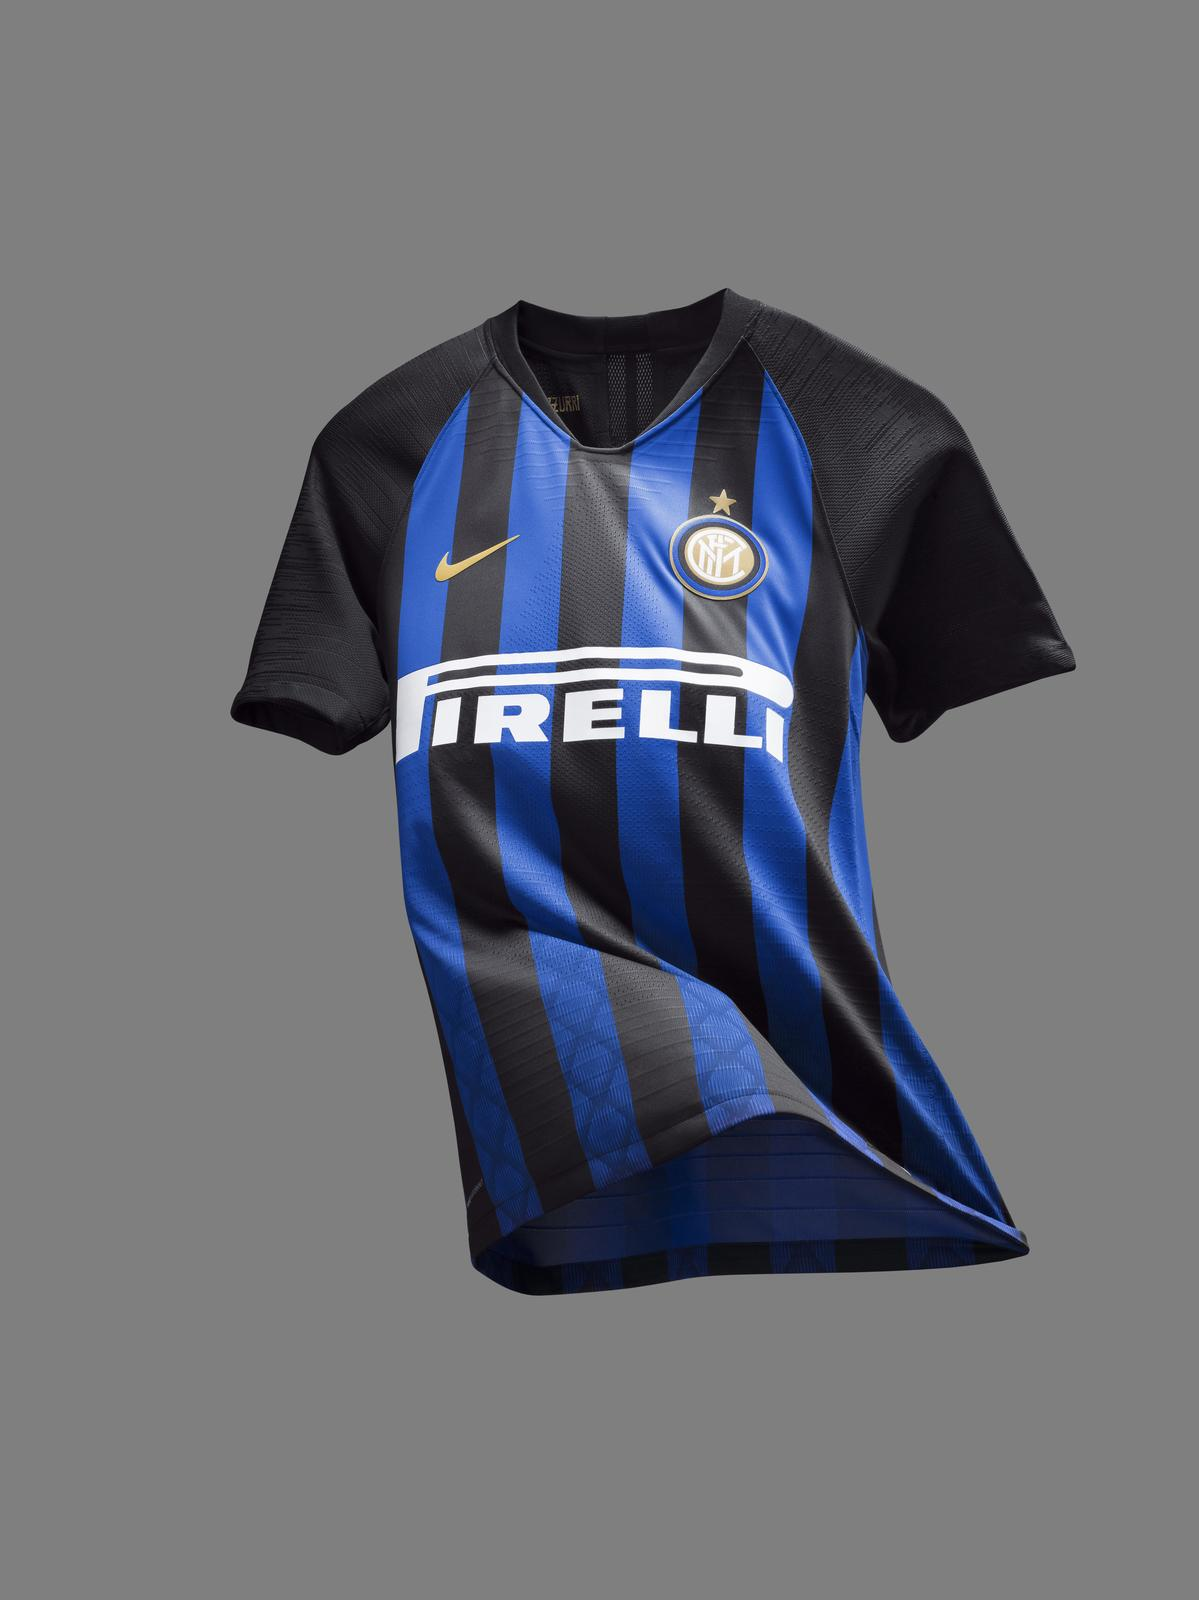 super popular 21ee6 ee9c9 FC Internazionale Milano and Nike Celebrate 20 Years of ...